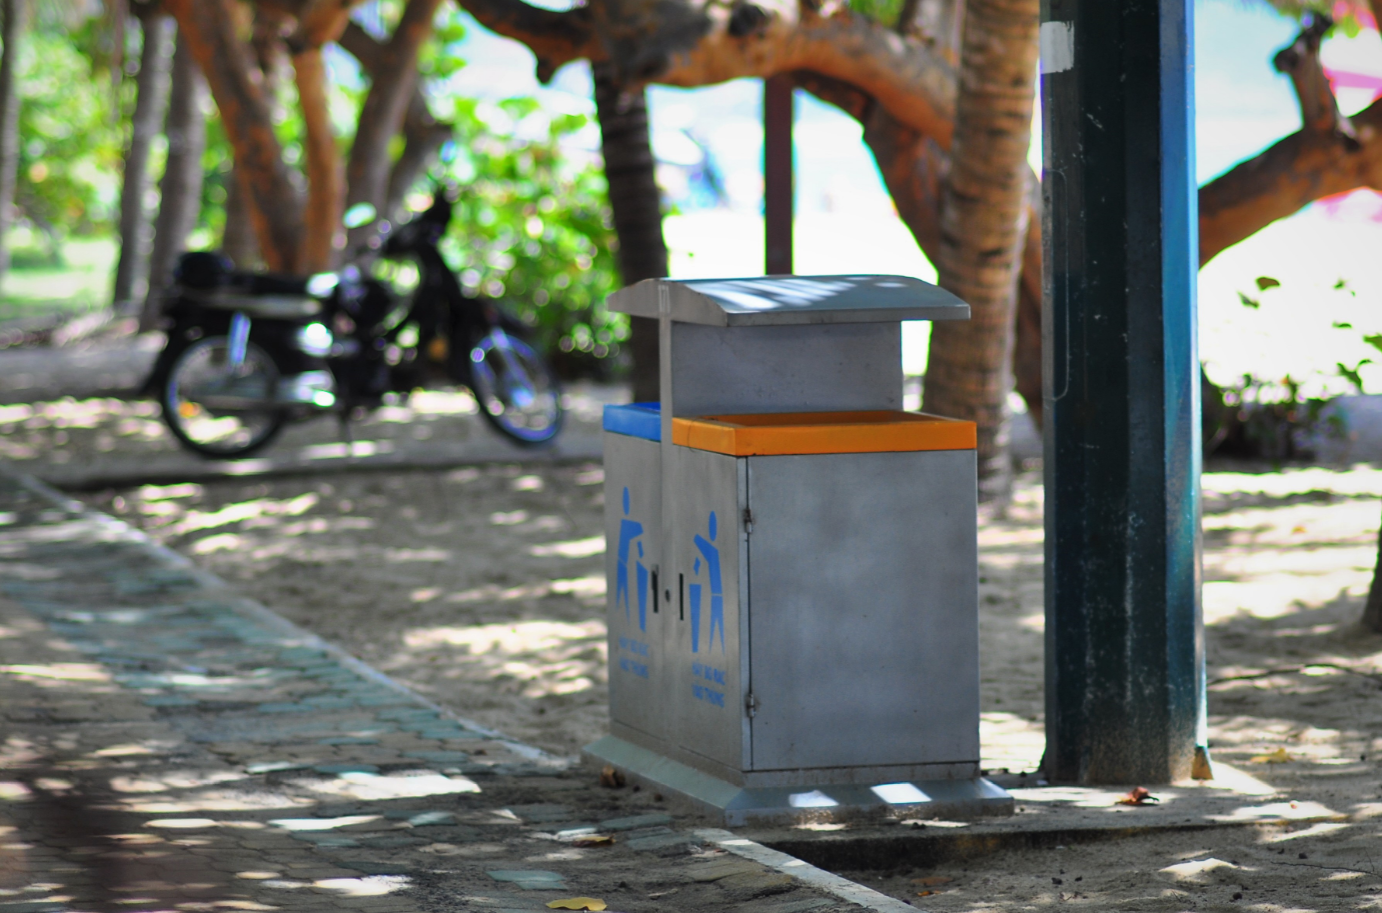 Organized trash bins encourage people to properly recycle and dispose their trash.